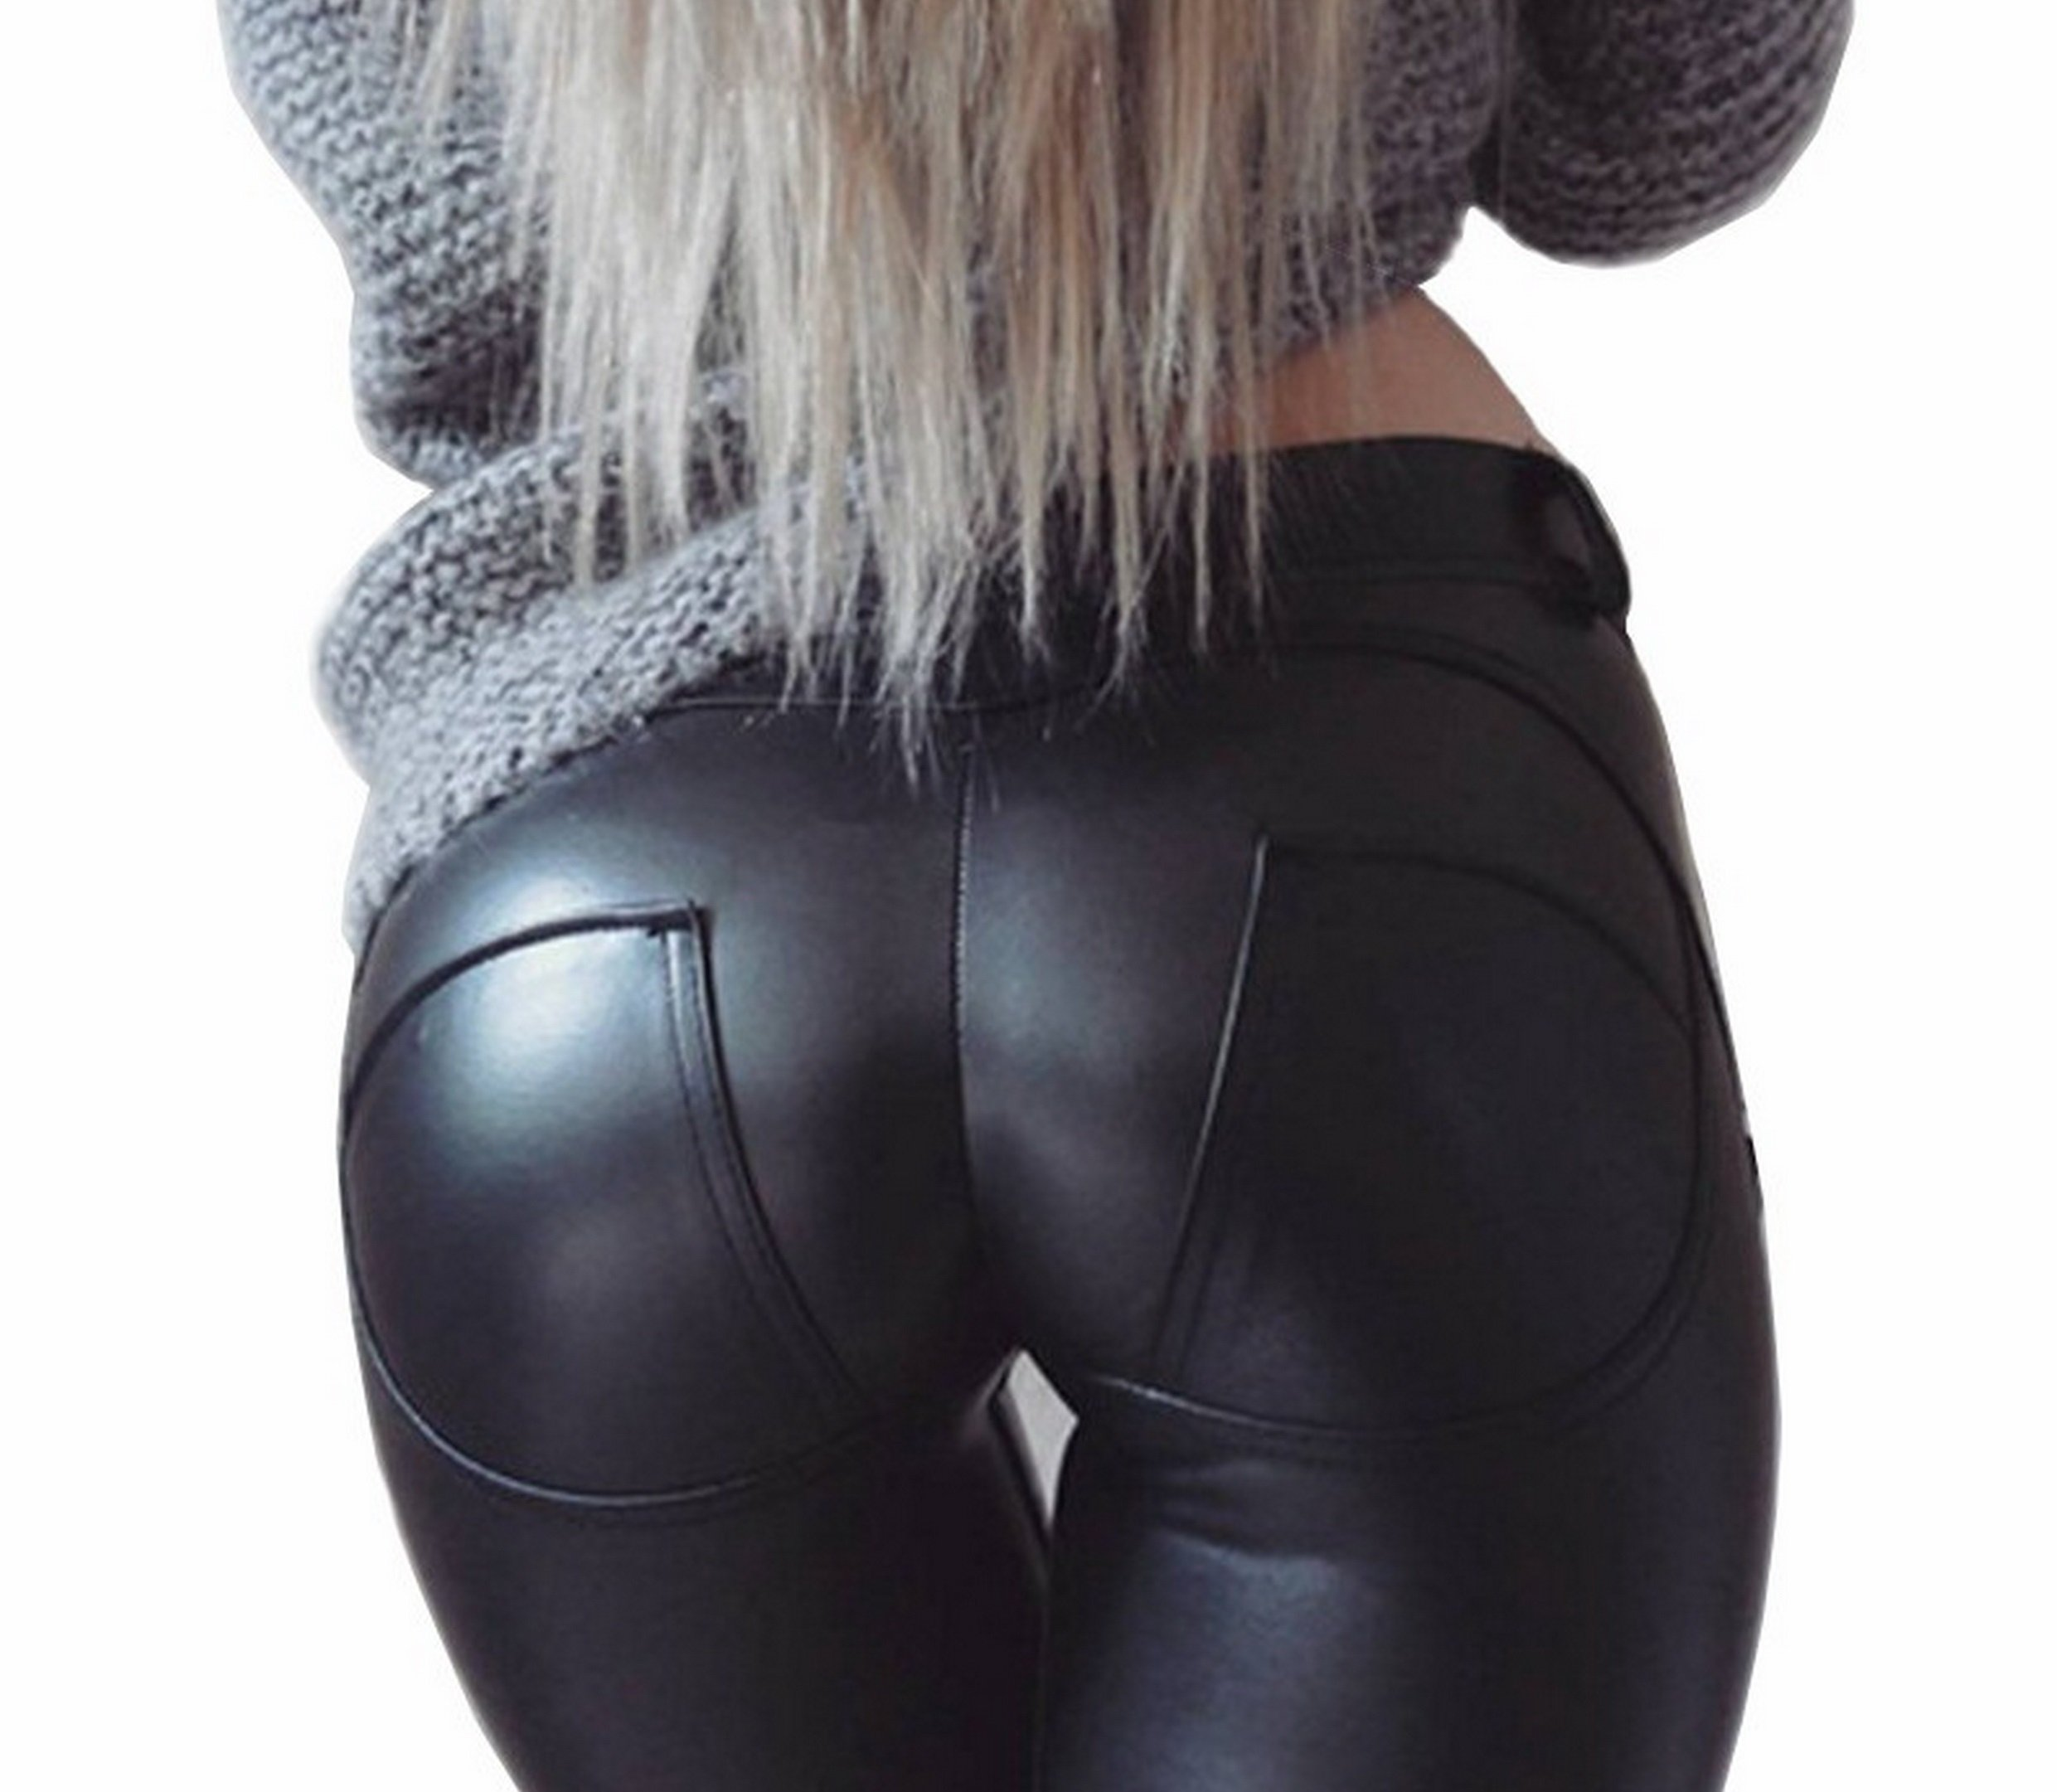 Faux Leather PU Elastic Shaping Hip Push Up Pants Black Sexy Leggings for Women ((Size 0-2) Small) by DALLNS